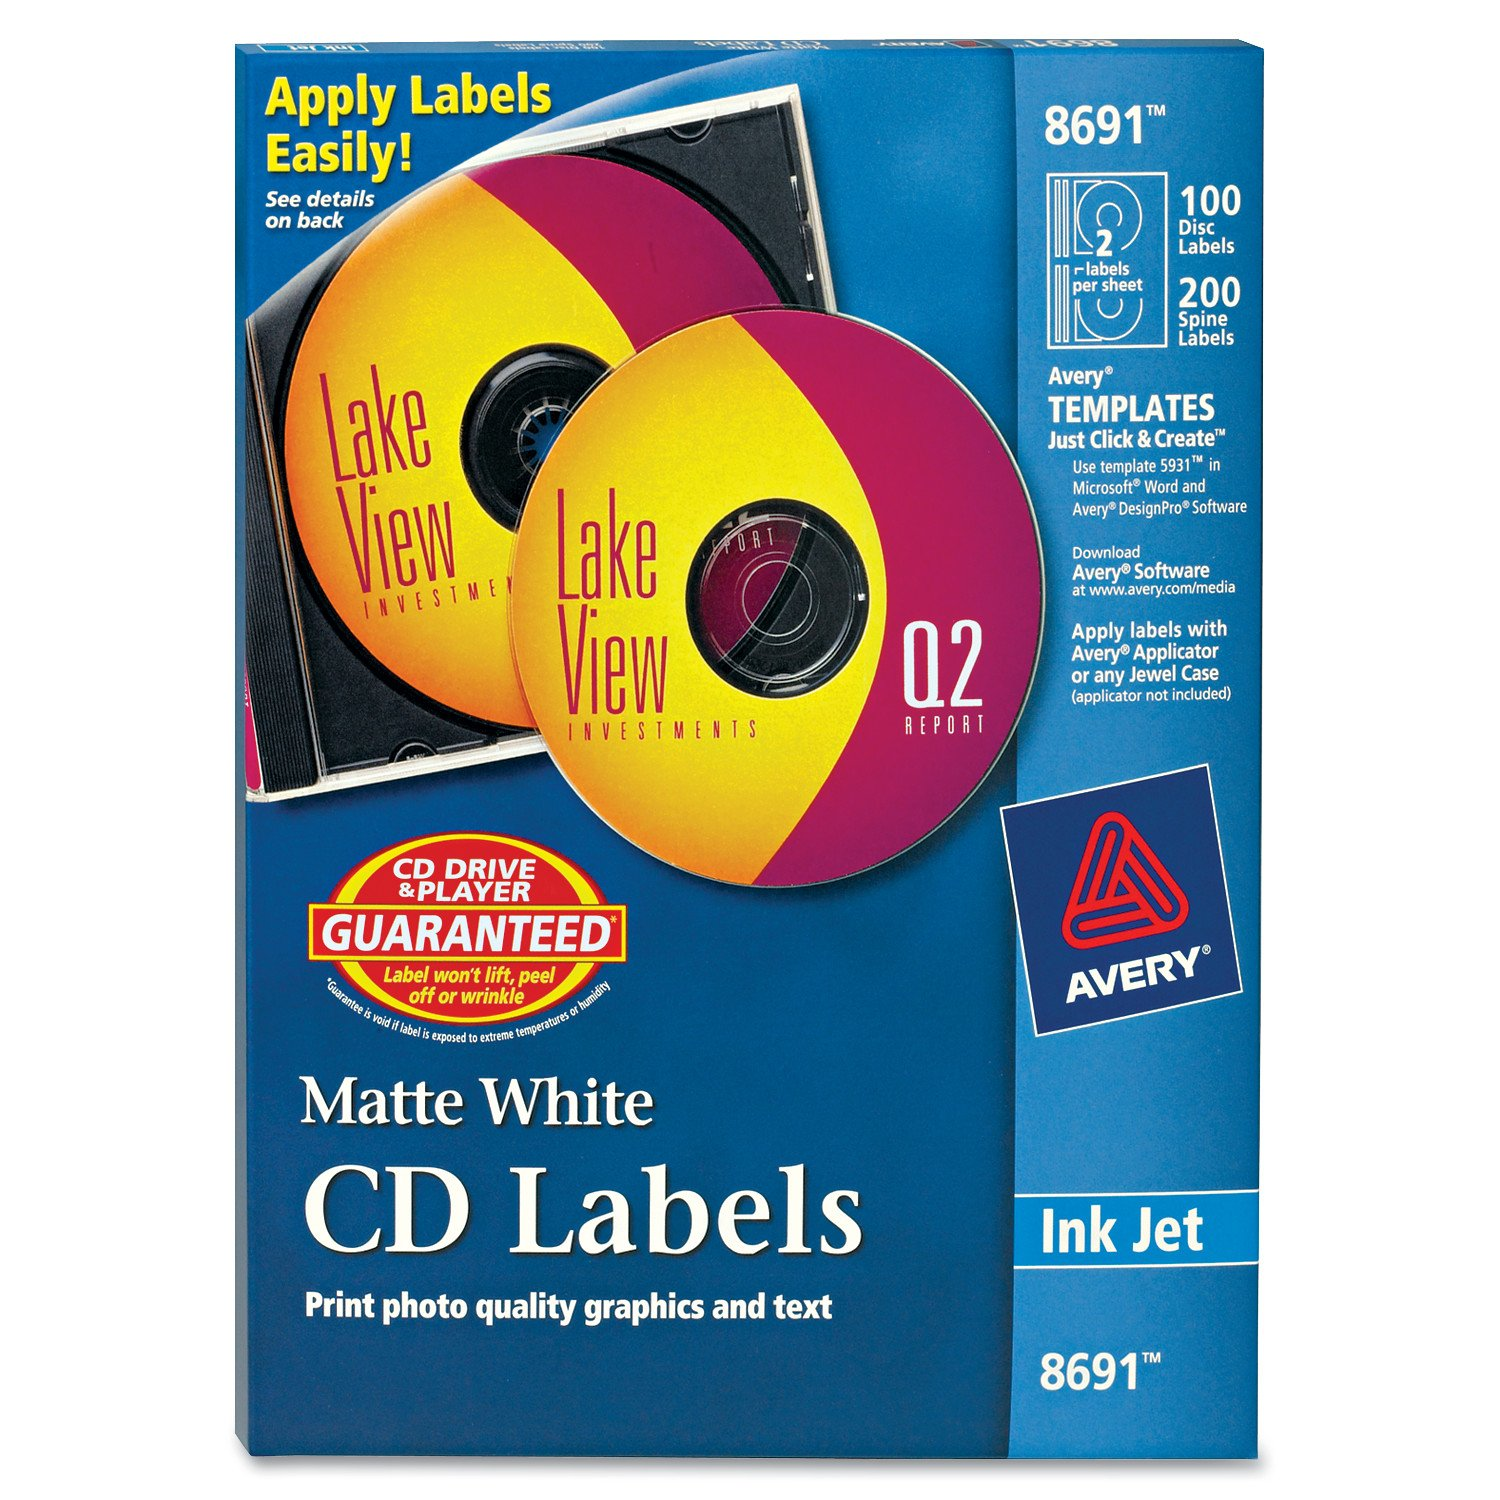 Amazon.com : Avery CD Labels - 100 Disc labels & 200 Spine labels ...